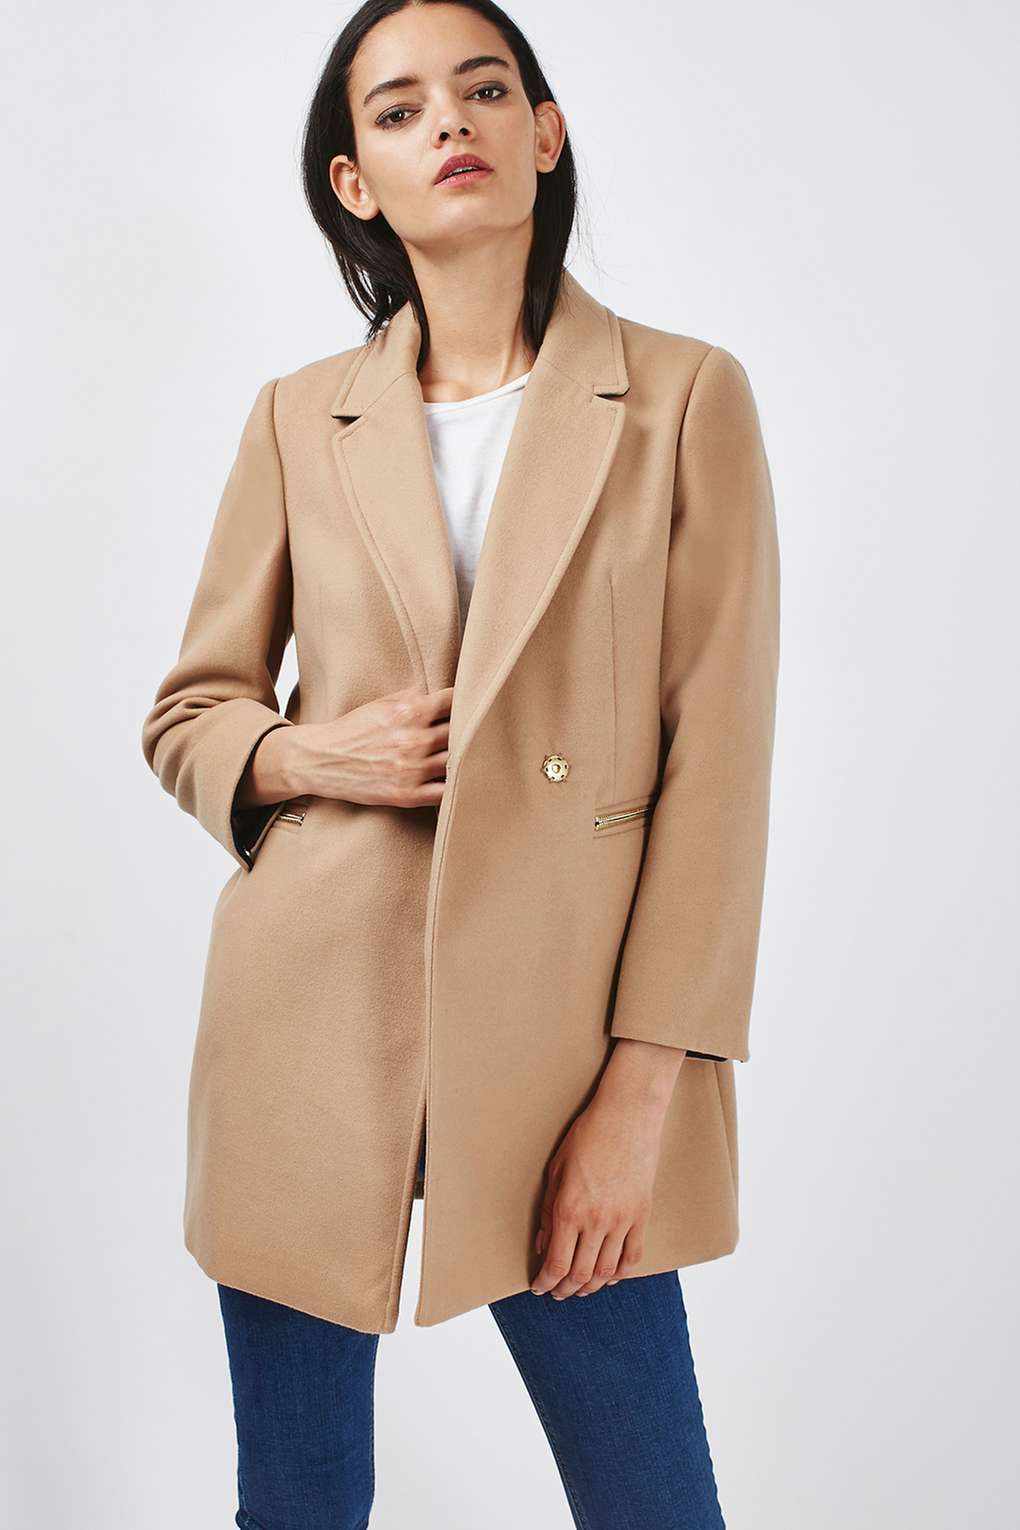 PETITE Meg Zip Coat - New In | Coats, Topshop and Buy buy